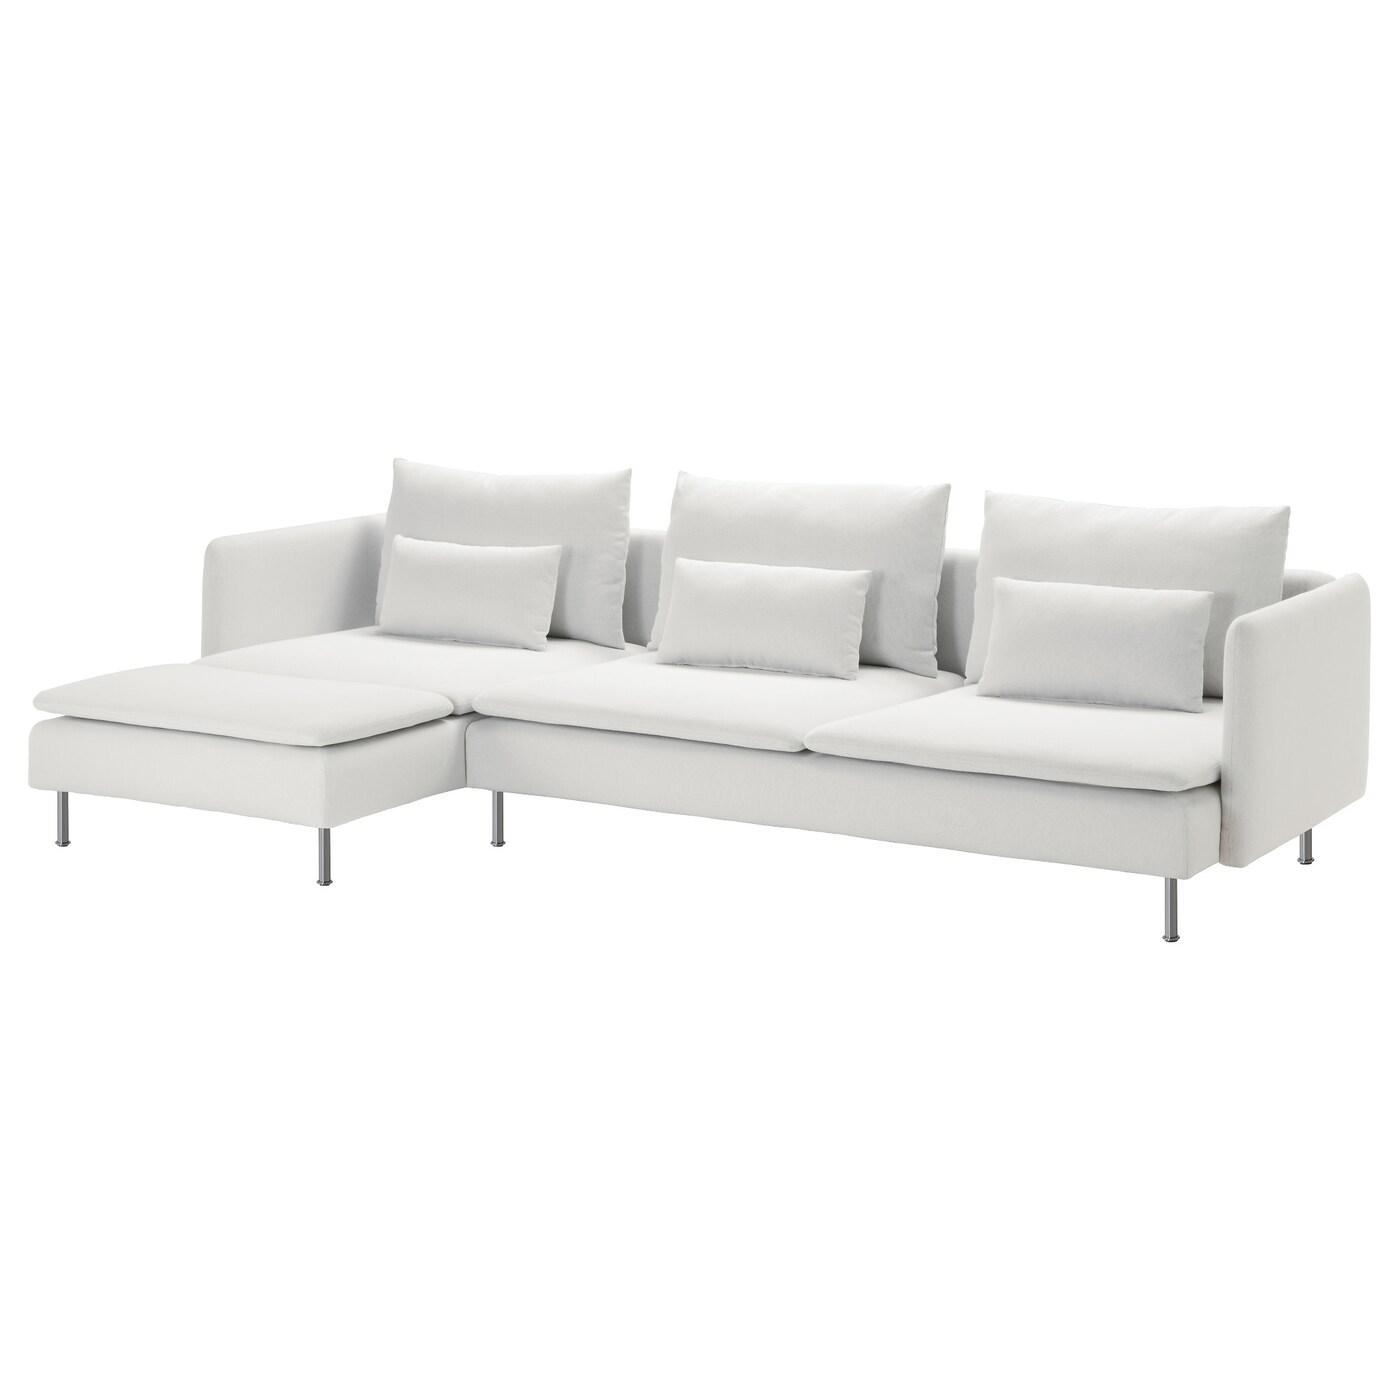 four seat sofa with chaise air mattress sleeper sÖderhamn 4 longue finnsta white ikea